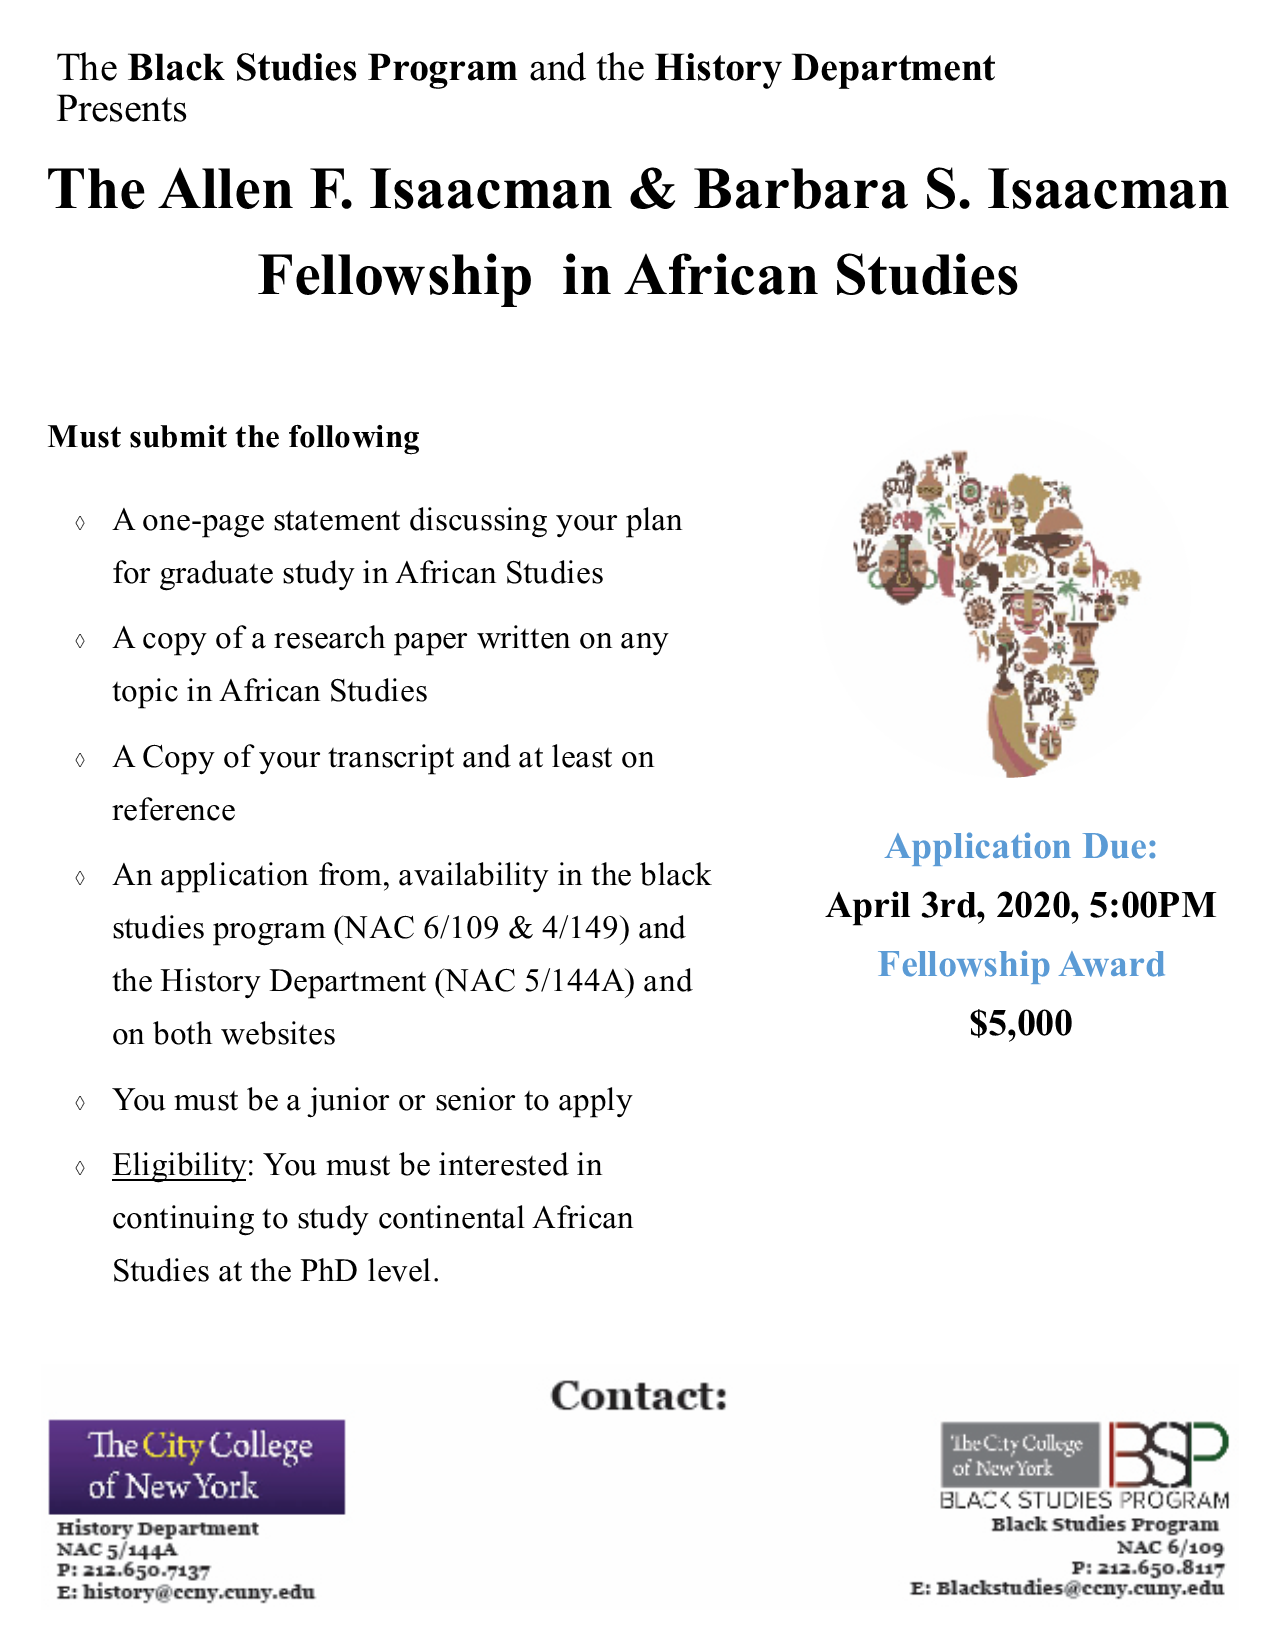 The Black Studies Program and the History Department  PresentsThe Allen F. Isaacman & Barbara S. Isaacman  Fellowship  in African Studies  .Must submit the following A one-page statement discussing your plan for graduate study in African Studies  A copy of a research paper written on any topic in African Studies A Copy of your transcript and at least on reference An application from, availability in the black studies program (NAC 6/109 & 4/149) and the History Department (NAC 5/144A) and on both websites You must be a junior or senior to apply Eligibility: You must be interested in continuing to study continental African Studies at the PhD level.Application Due: April 3rd, 2020, 5:00PM Fellowship Award  $5,000